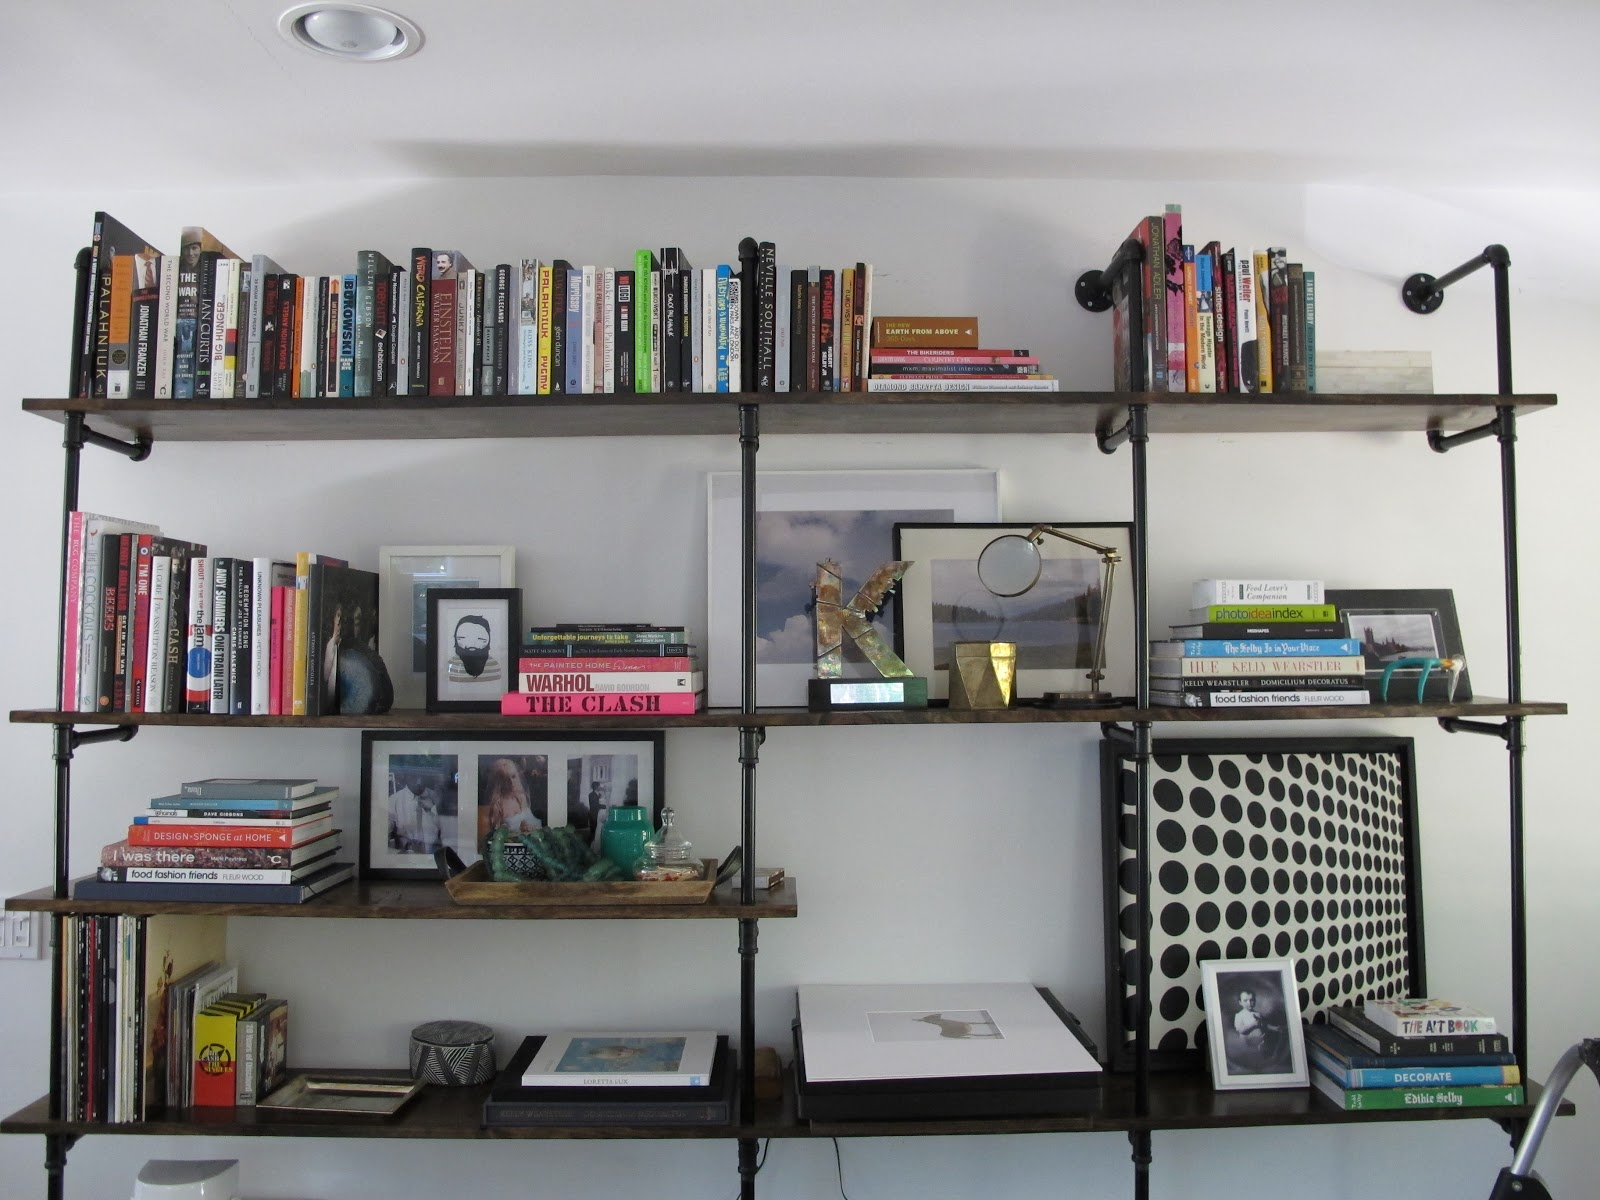 loved crate pinterest on houzz bookcase which is interiors i lot diy room of bookshelf and started michelle since his search blog small down a tara what typical the narrowed tutorial